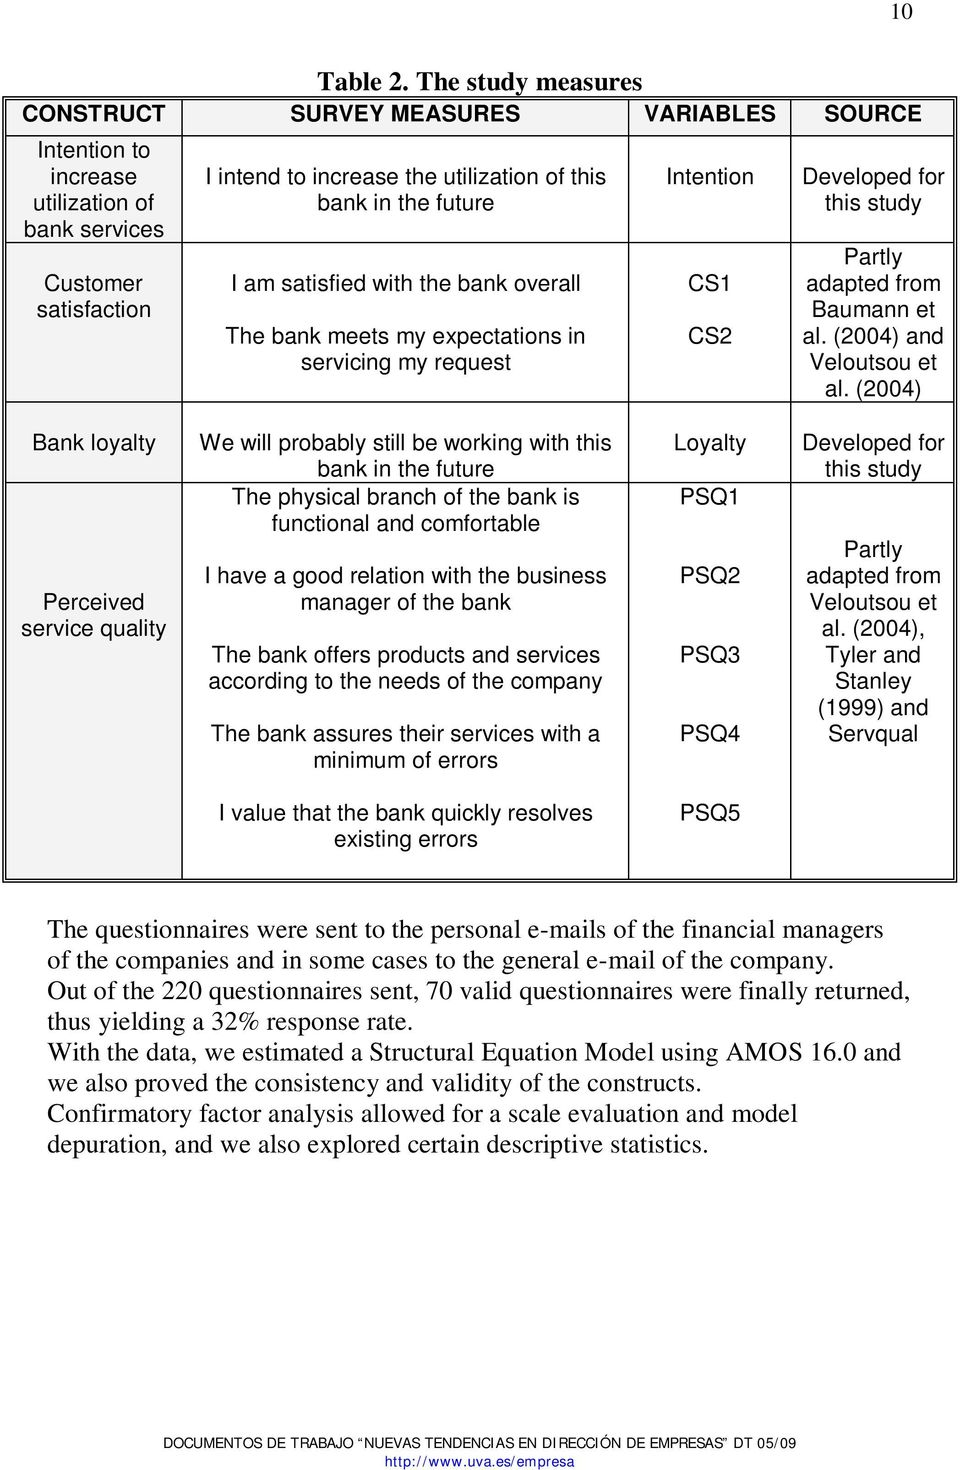 I am satisfied with the bank overall The bank meets my expectations in servicing my request Intention CS1 CS2 Developed for this study Partly adapted from Baumann et al. (2004) and Veloutsou et al.